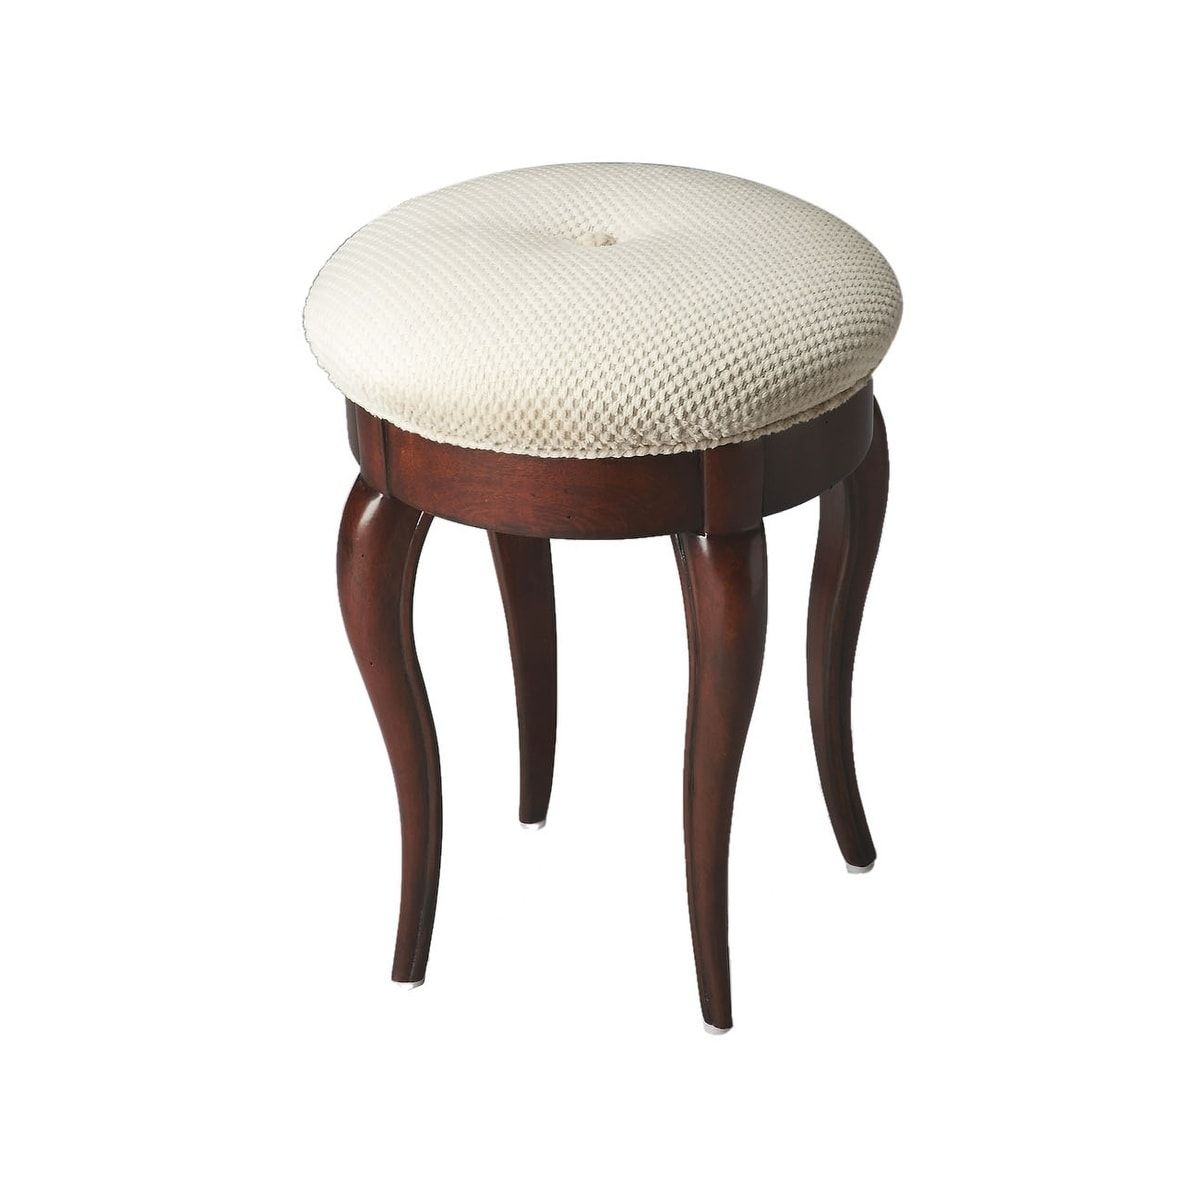 Groovy Traditional Wooden Round Vanity Stool In Plantation Cherry Gamerscity Chair Design For Home Gamerscityorg